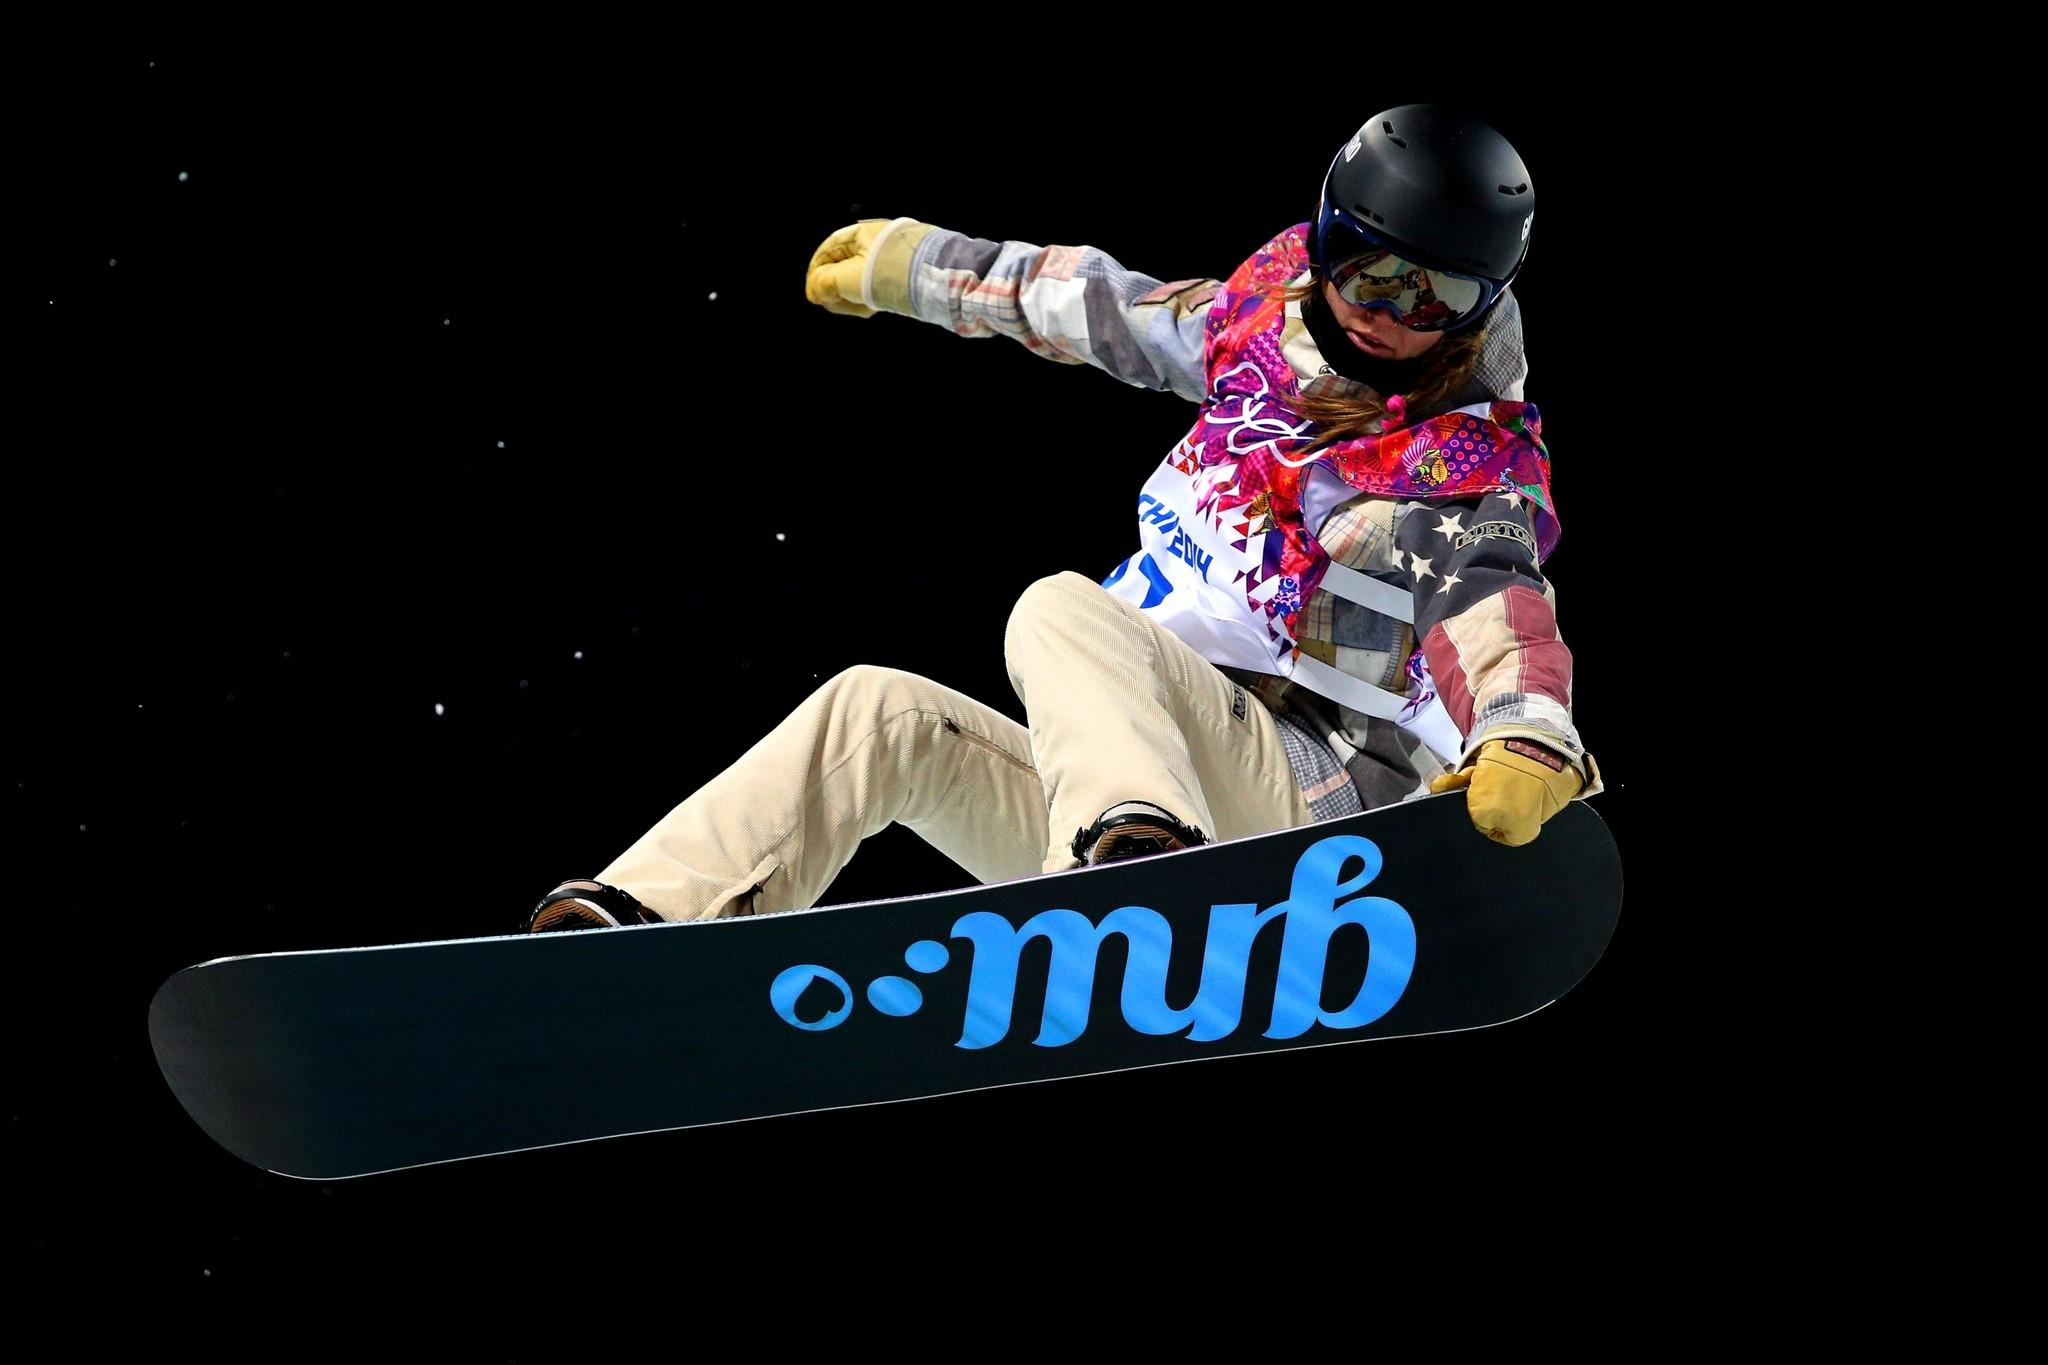 Kaitlyn Farrington of the United States competes in the Snowboard Women's Halfpipe.